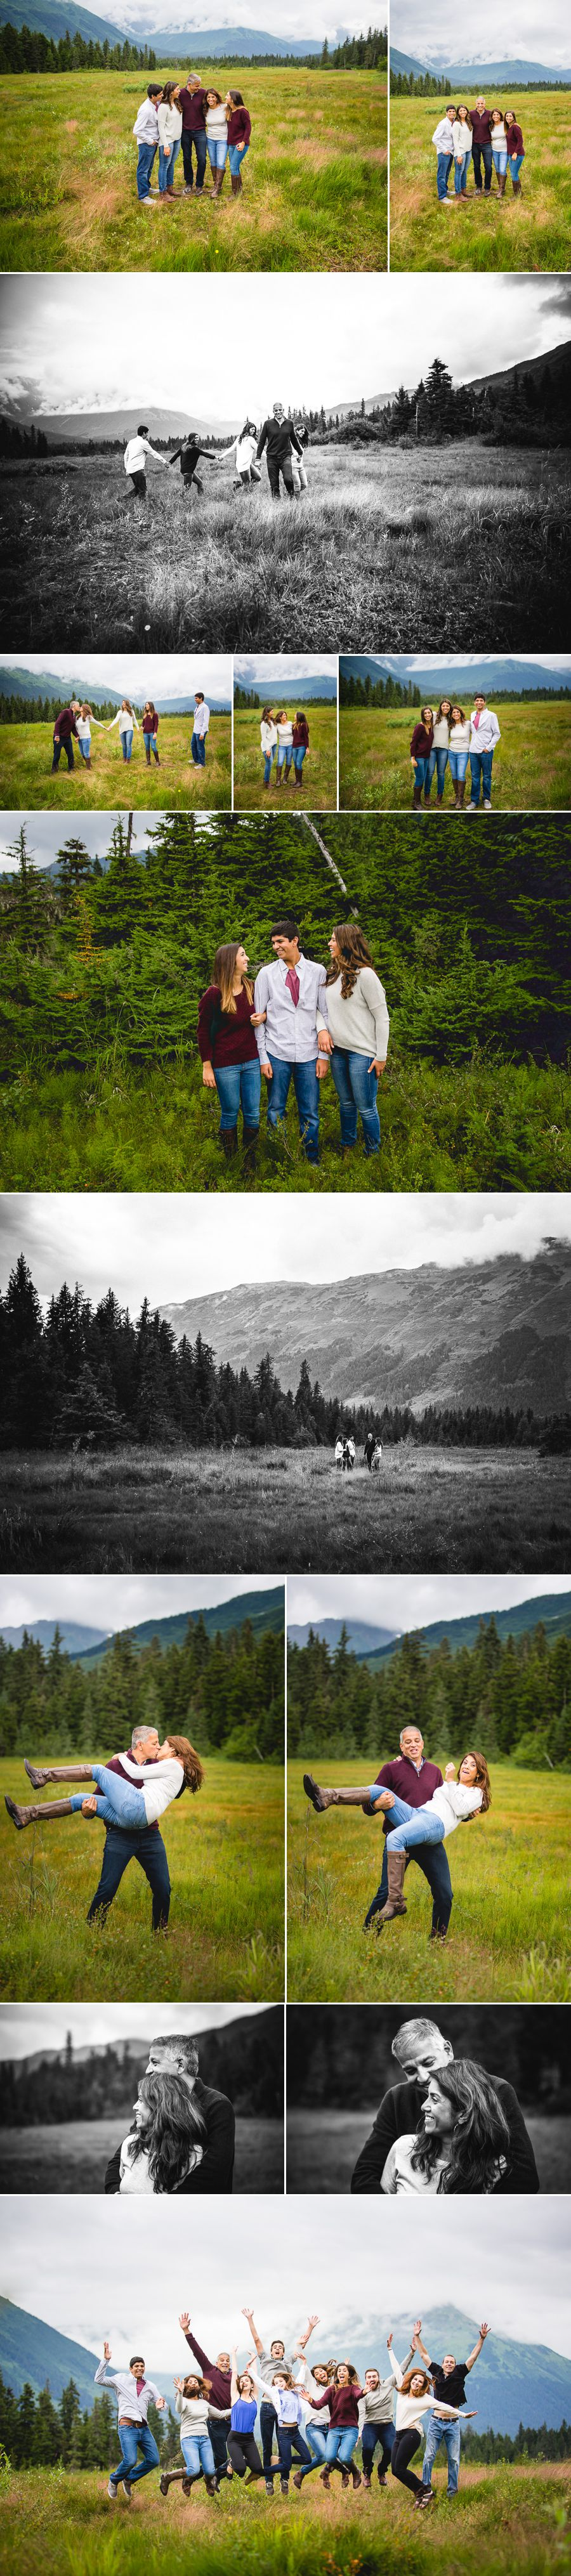 Alaska Vacation Family Photos